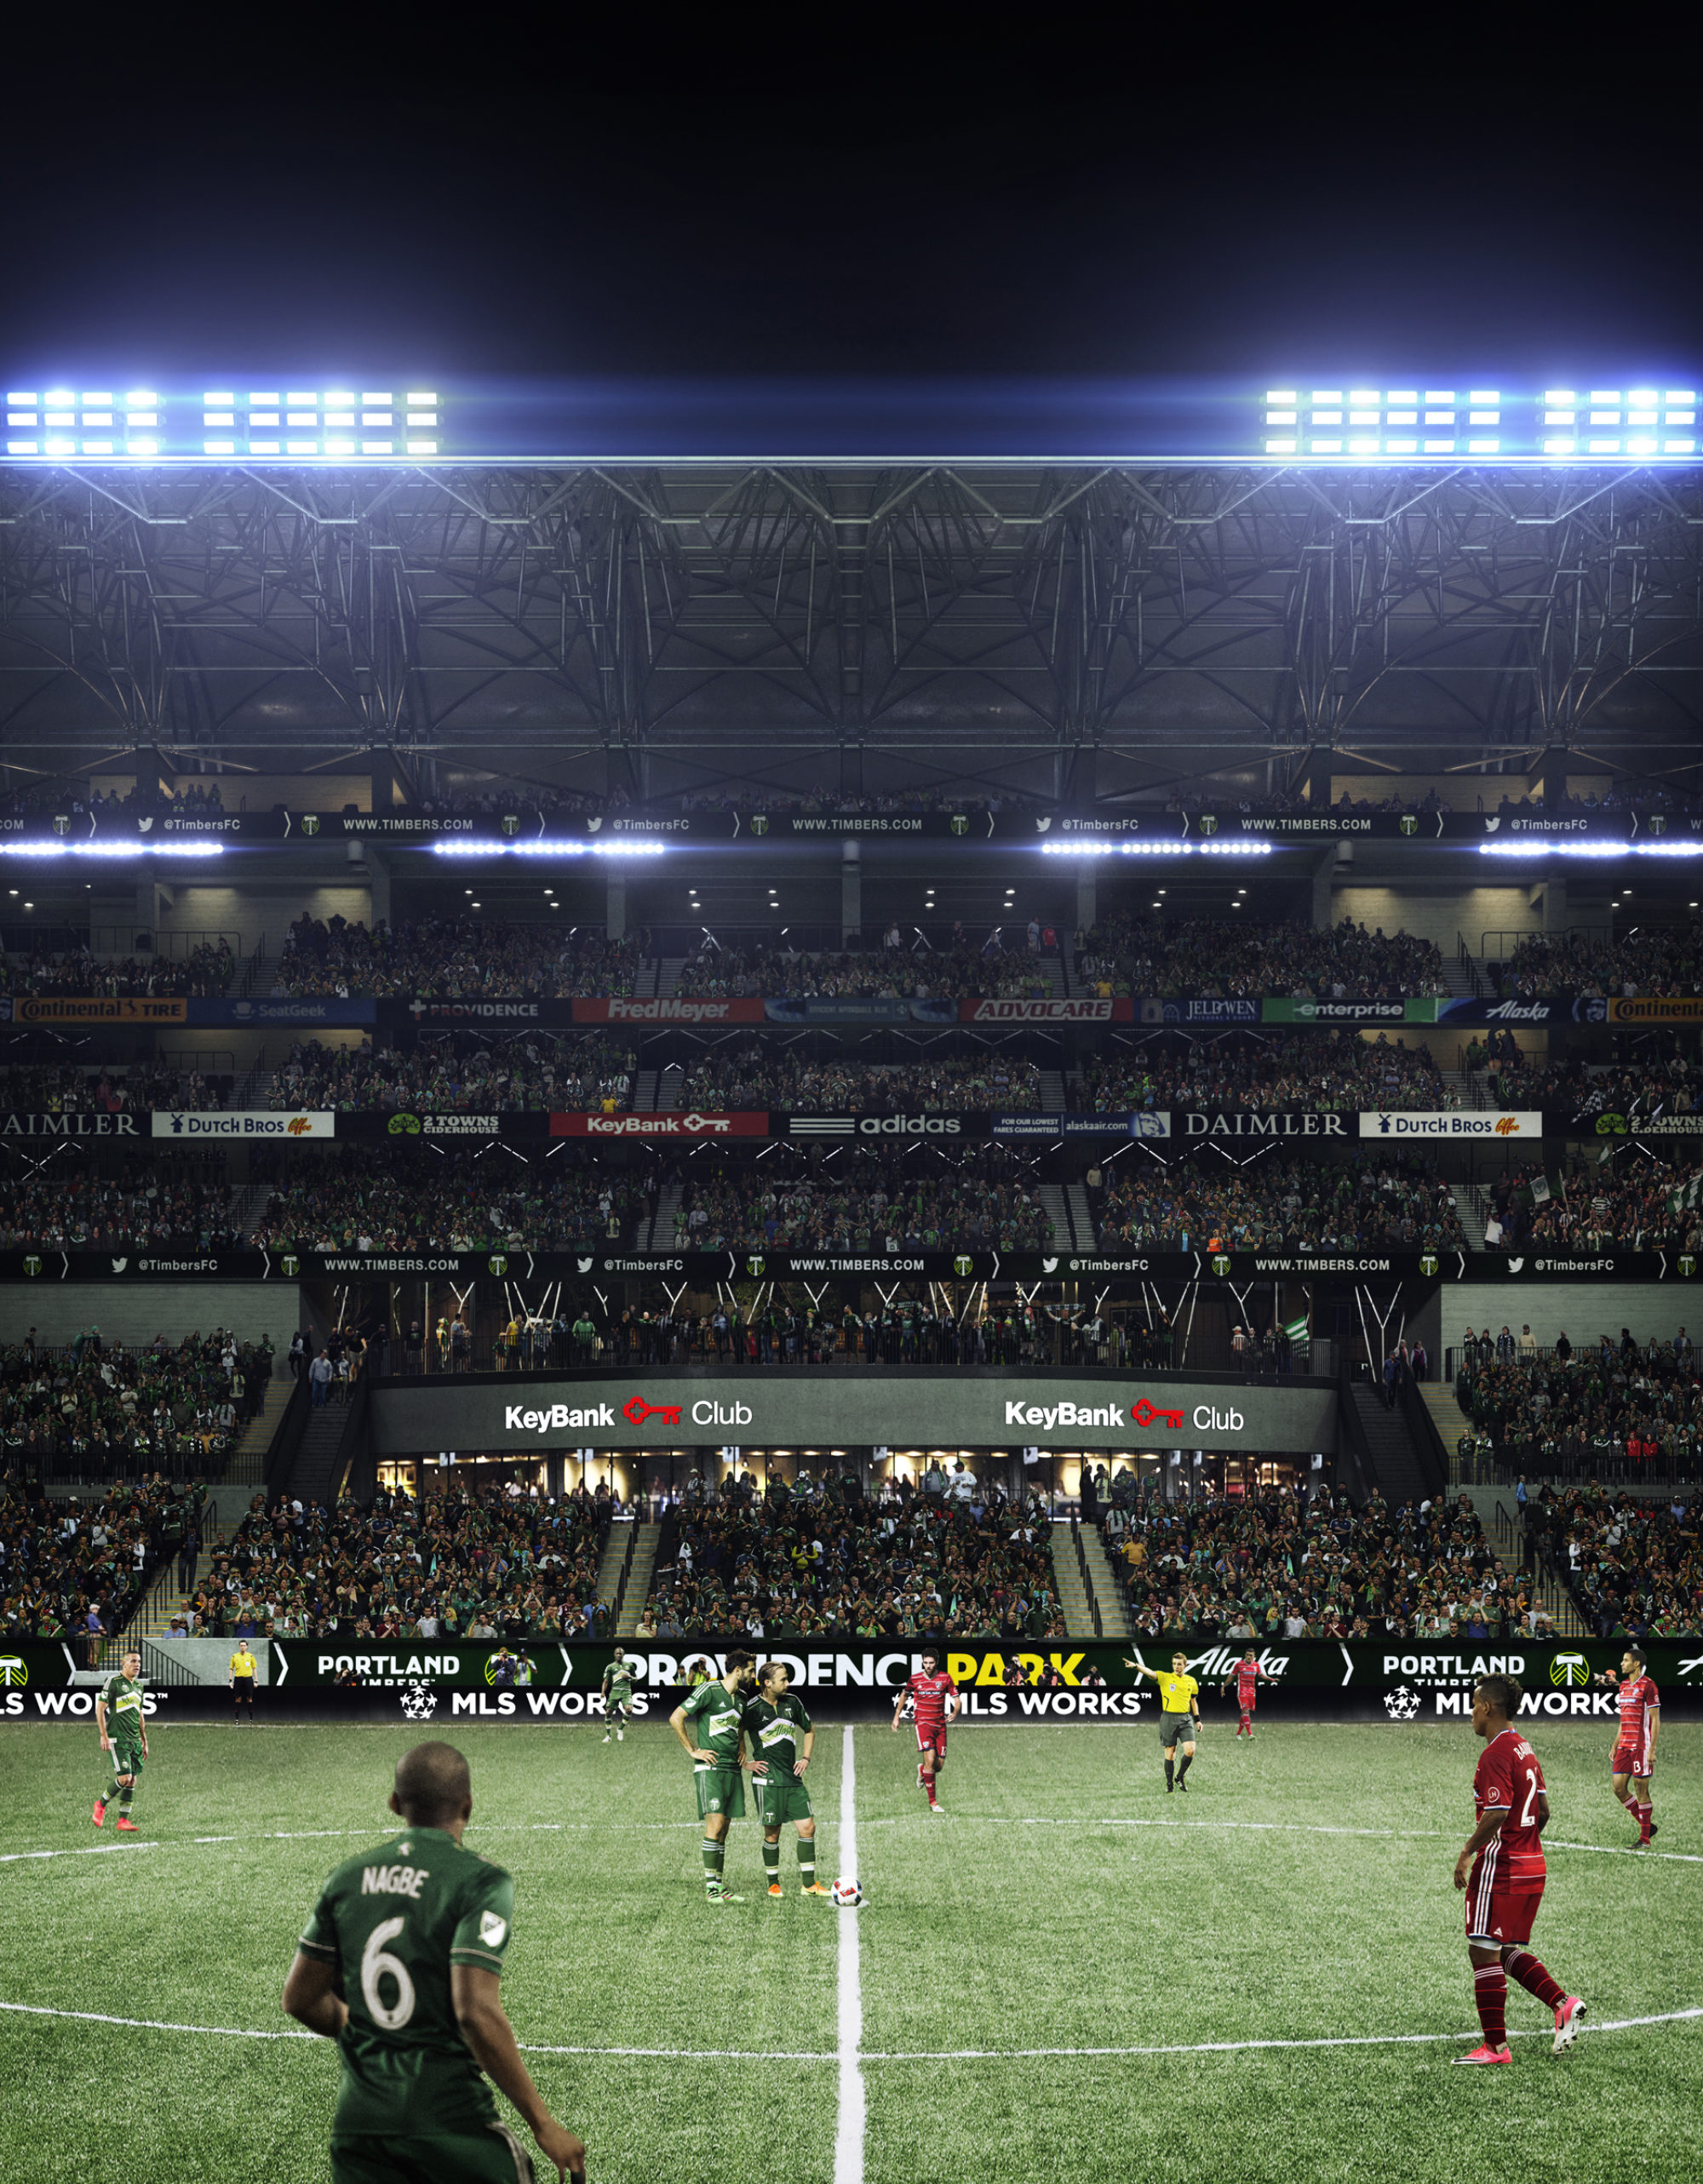 Portland-Timbers-Stadium-Kickoff-Allied-Works